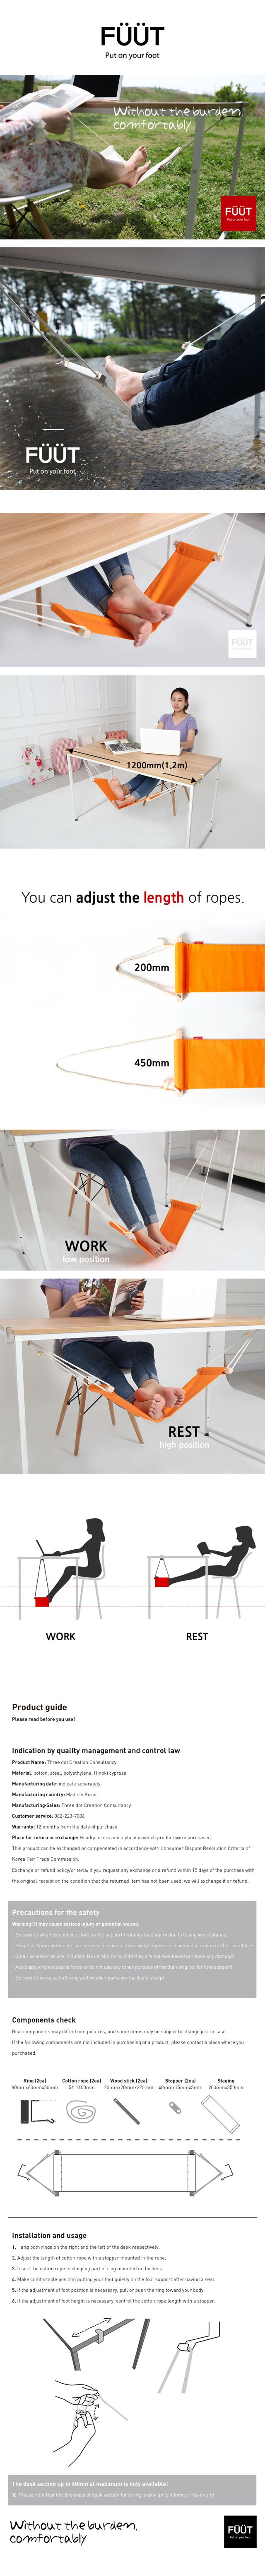 The Under-Desk Hammock George Costanza Needed—FÜÜT Hammock